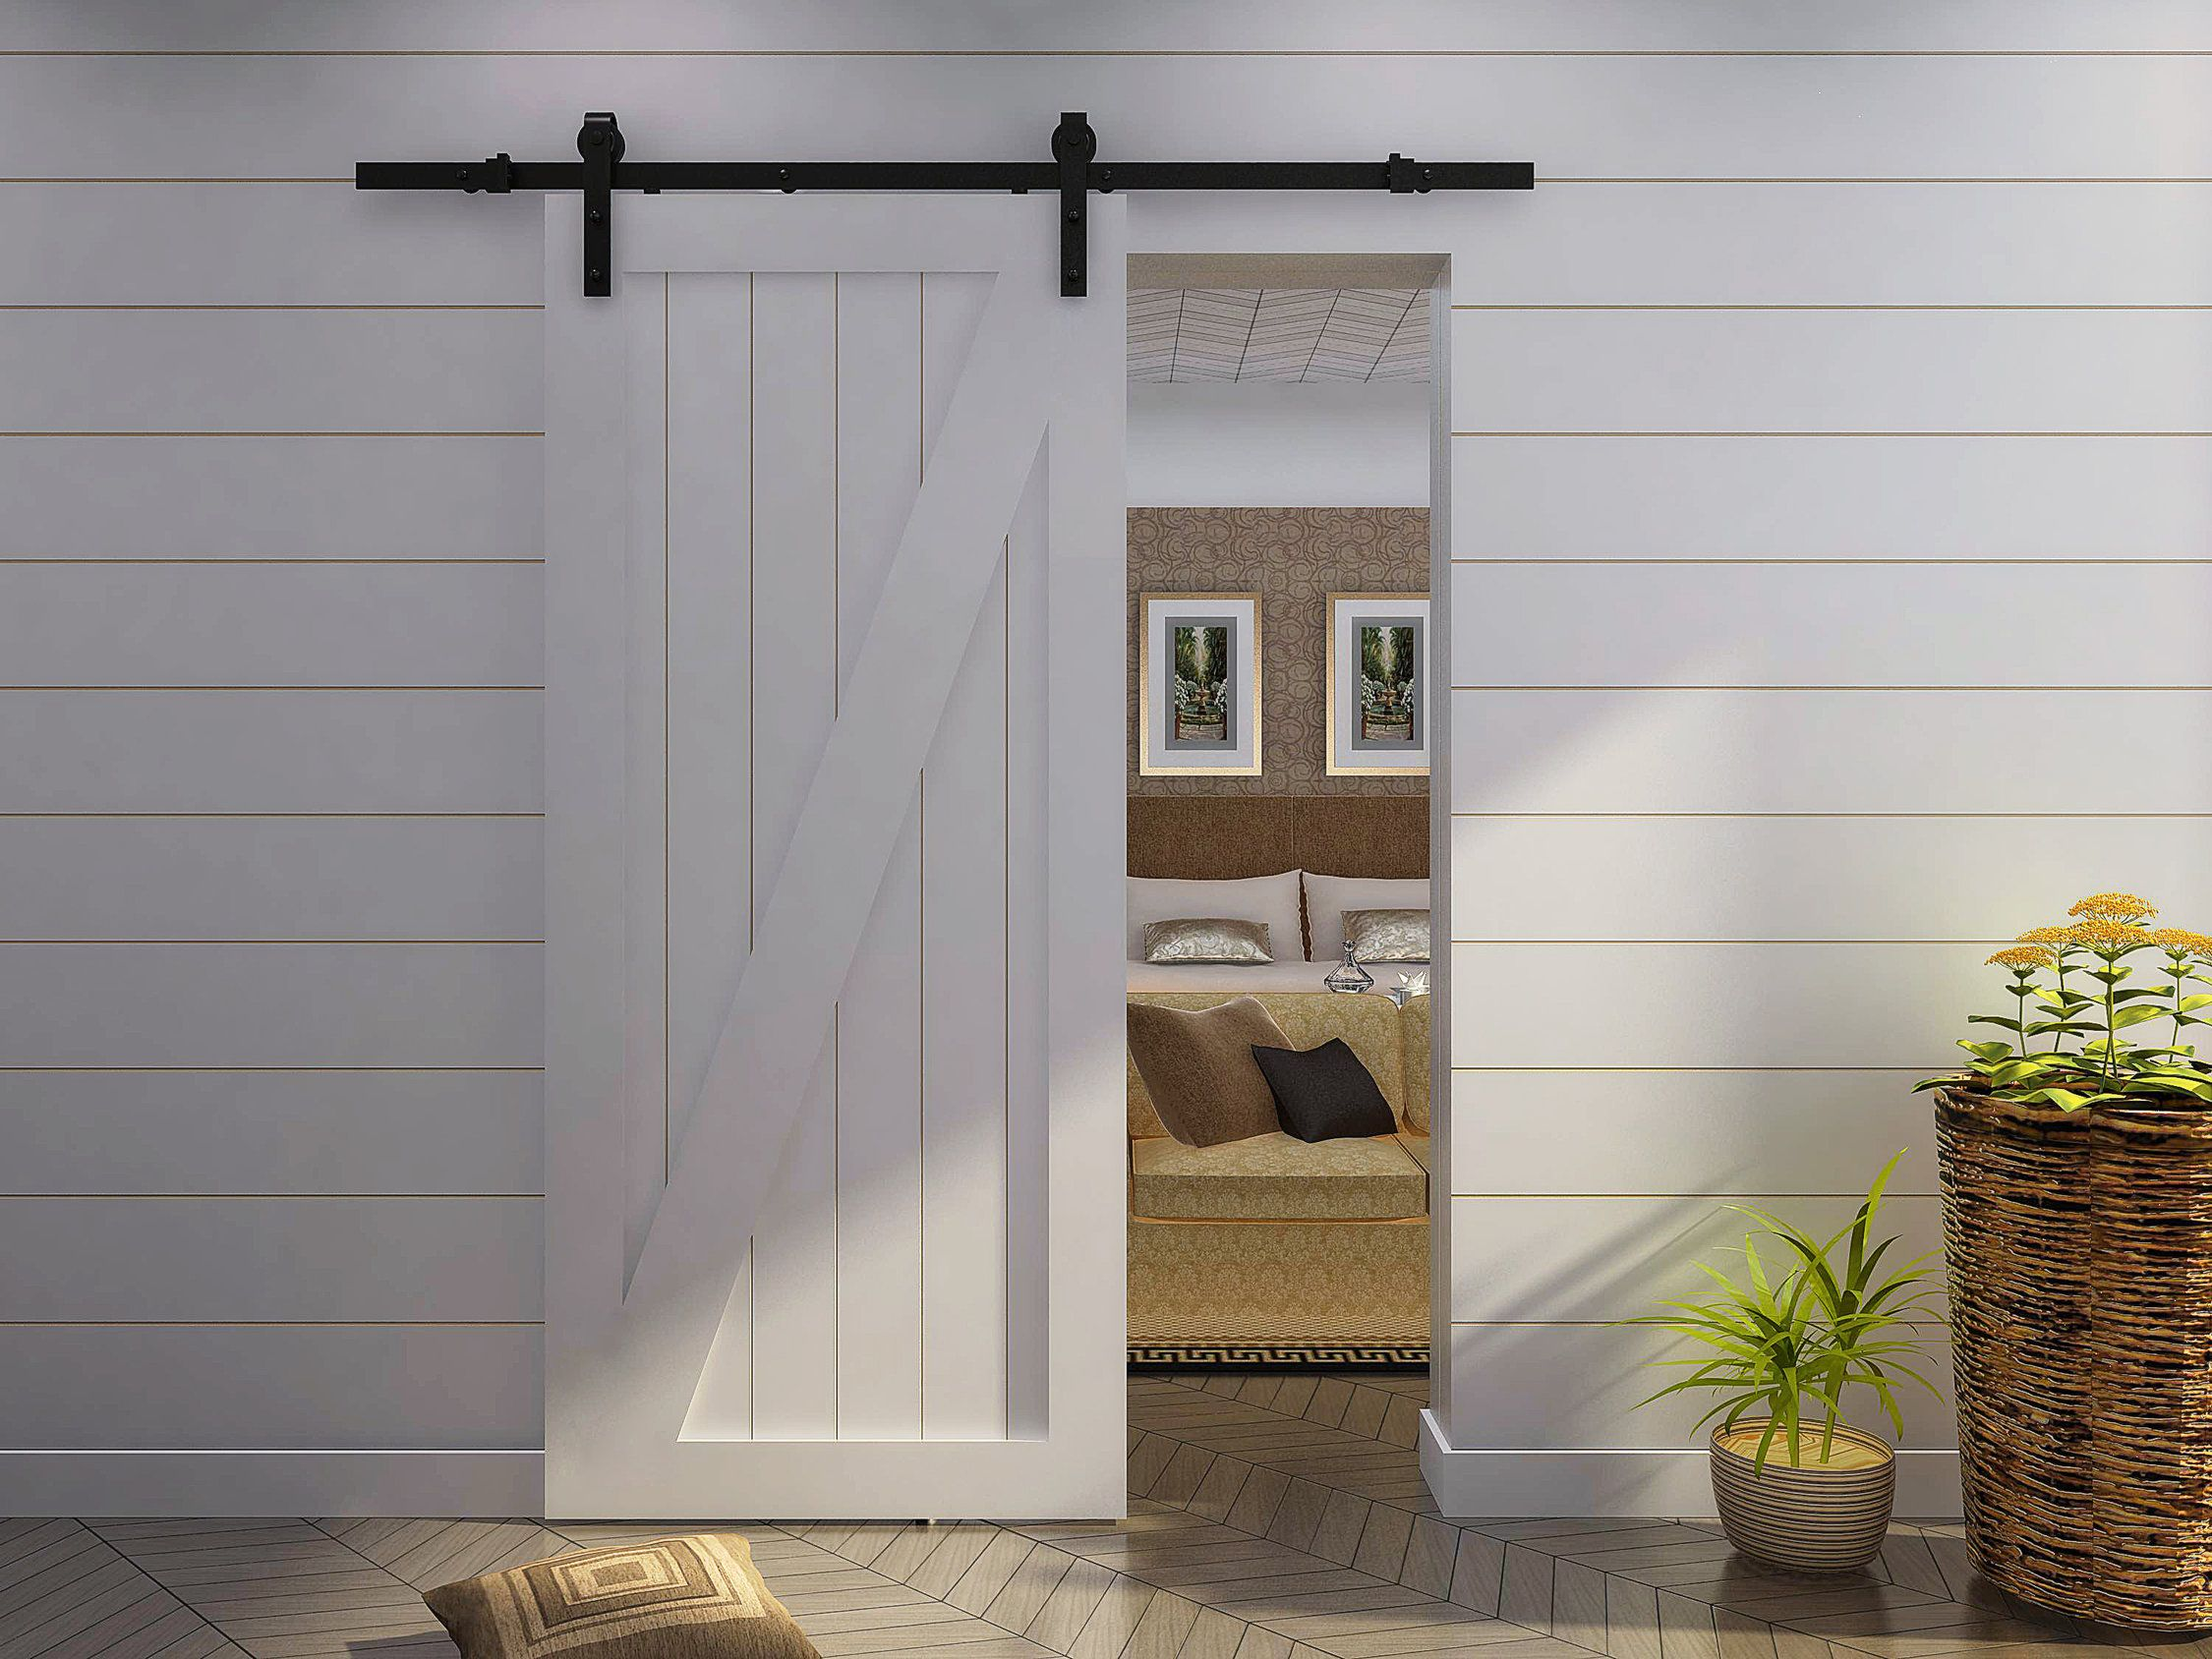 create beautiful space using barn doors interior barndoor hardware with barn doors interior for home